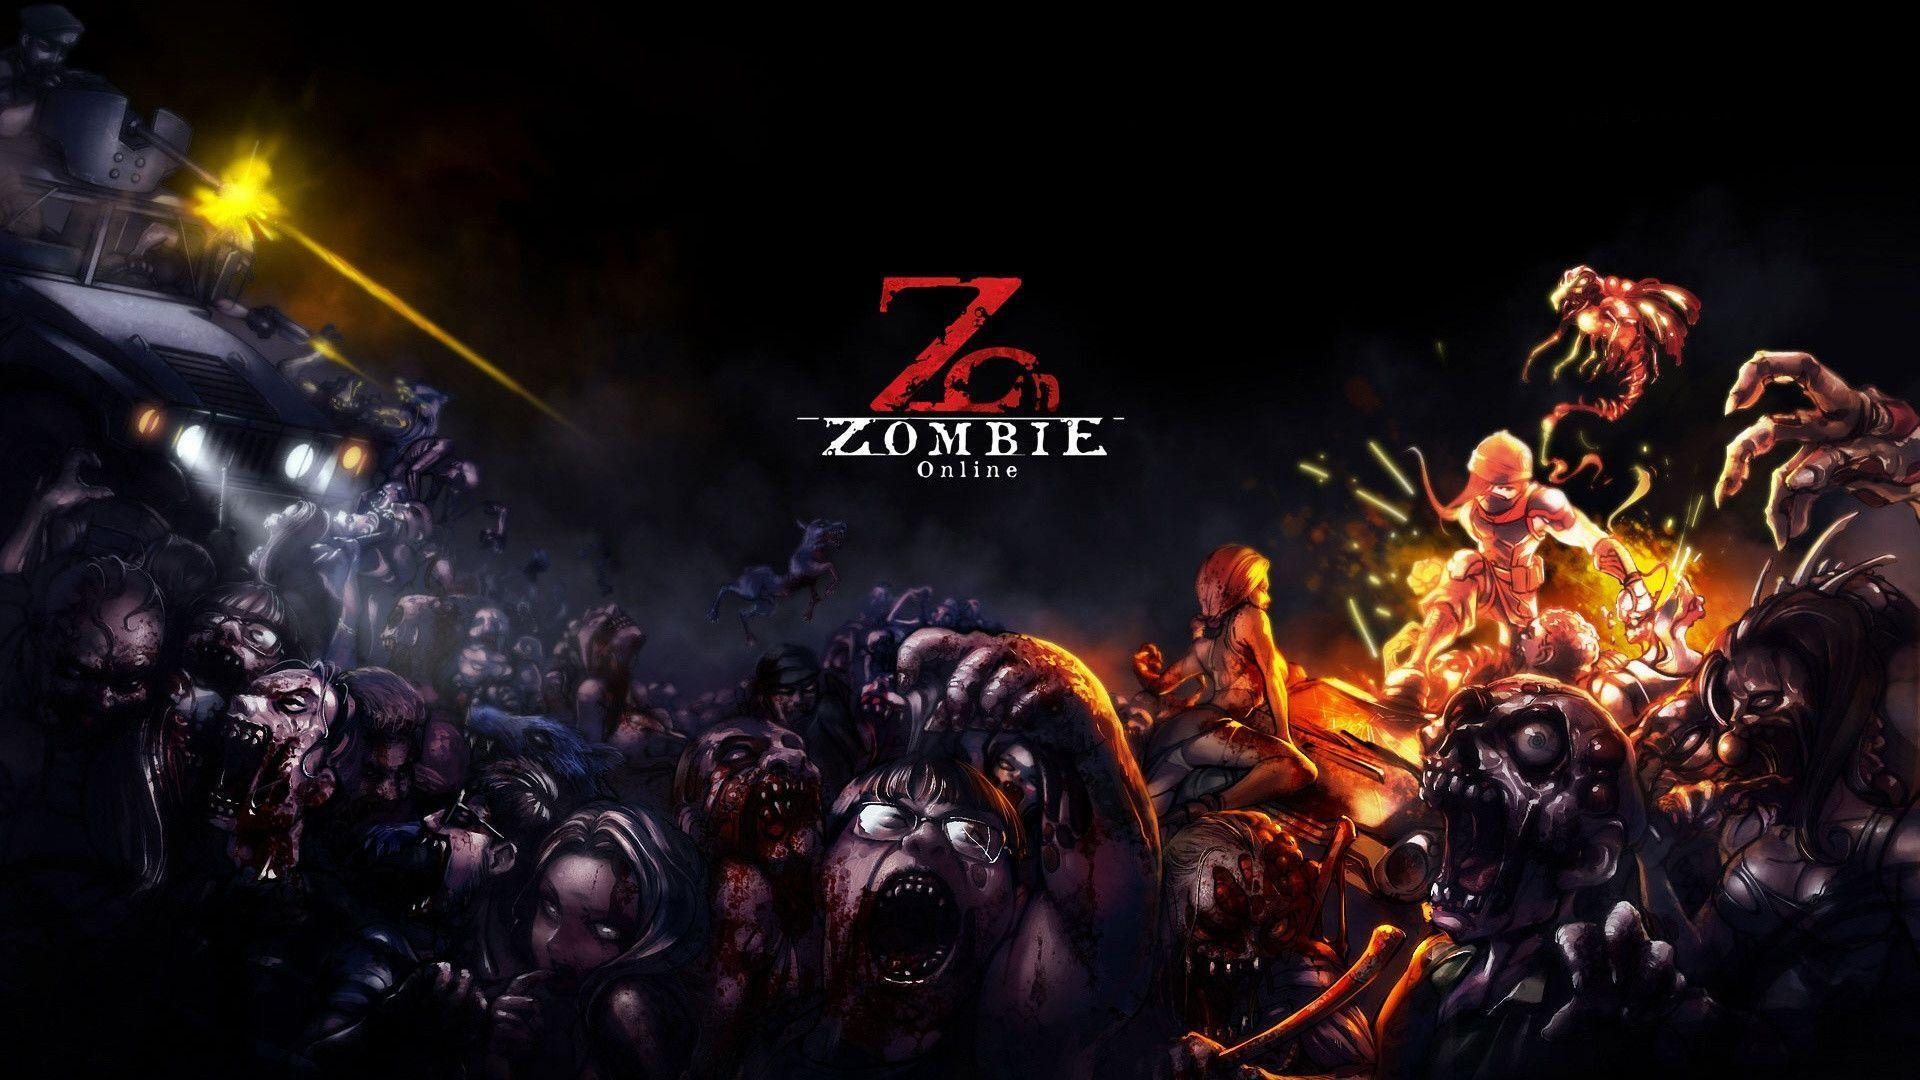 Wallpapers For > Zombie Wallpapers 1920x1080